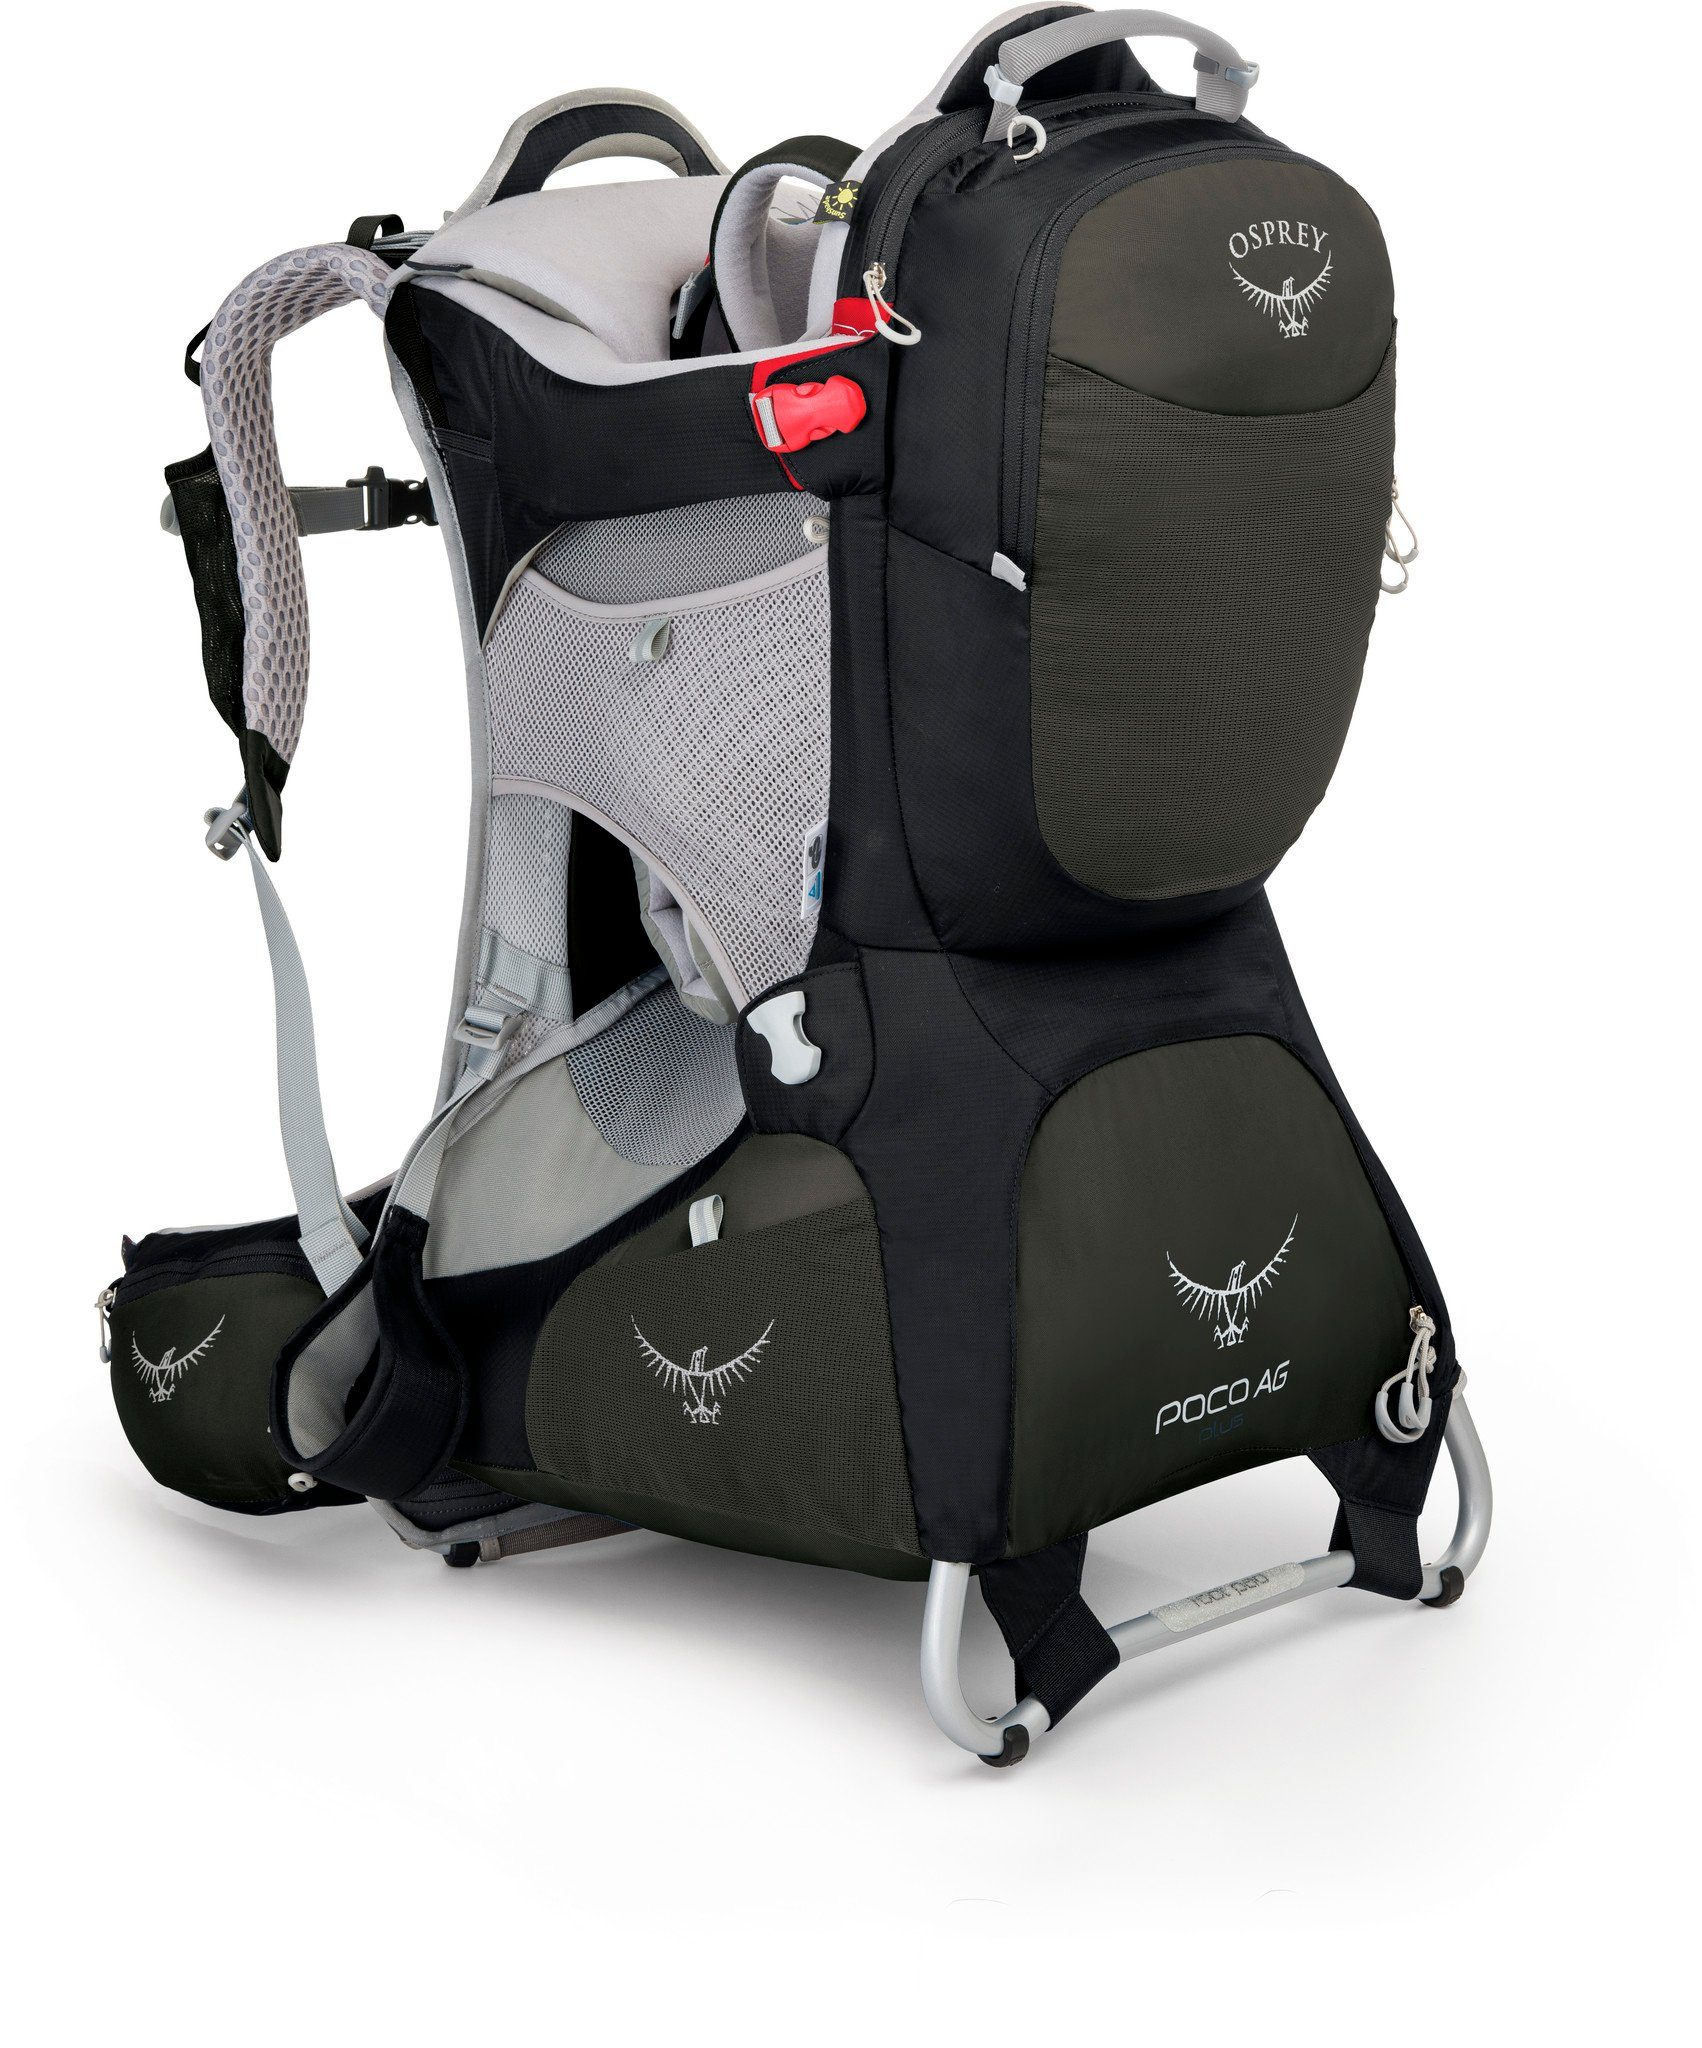 Osprey Kindertrage »Poco AG Plus Child Carrier«